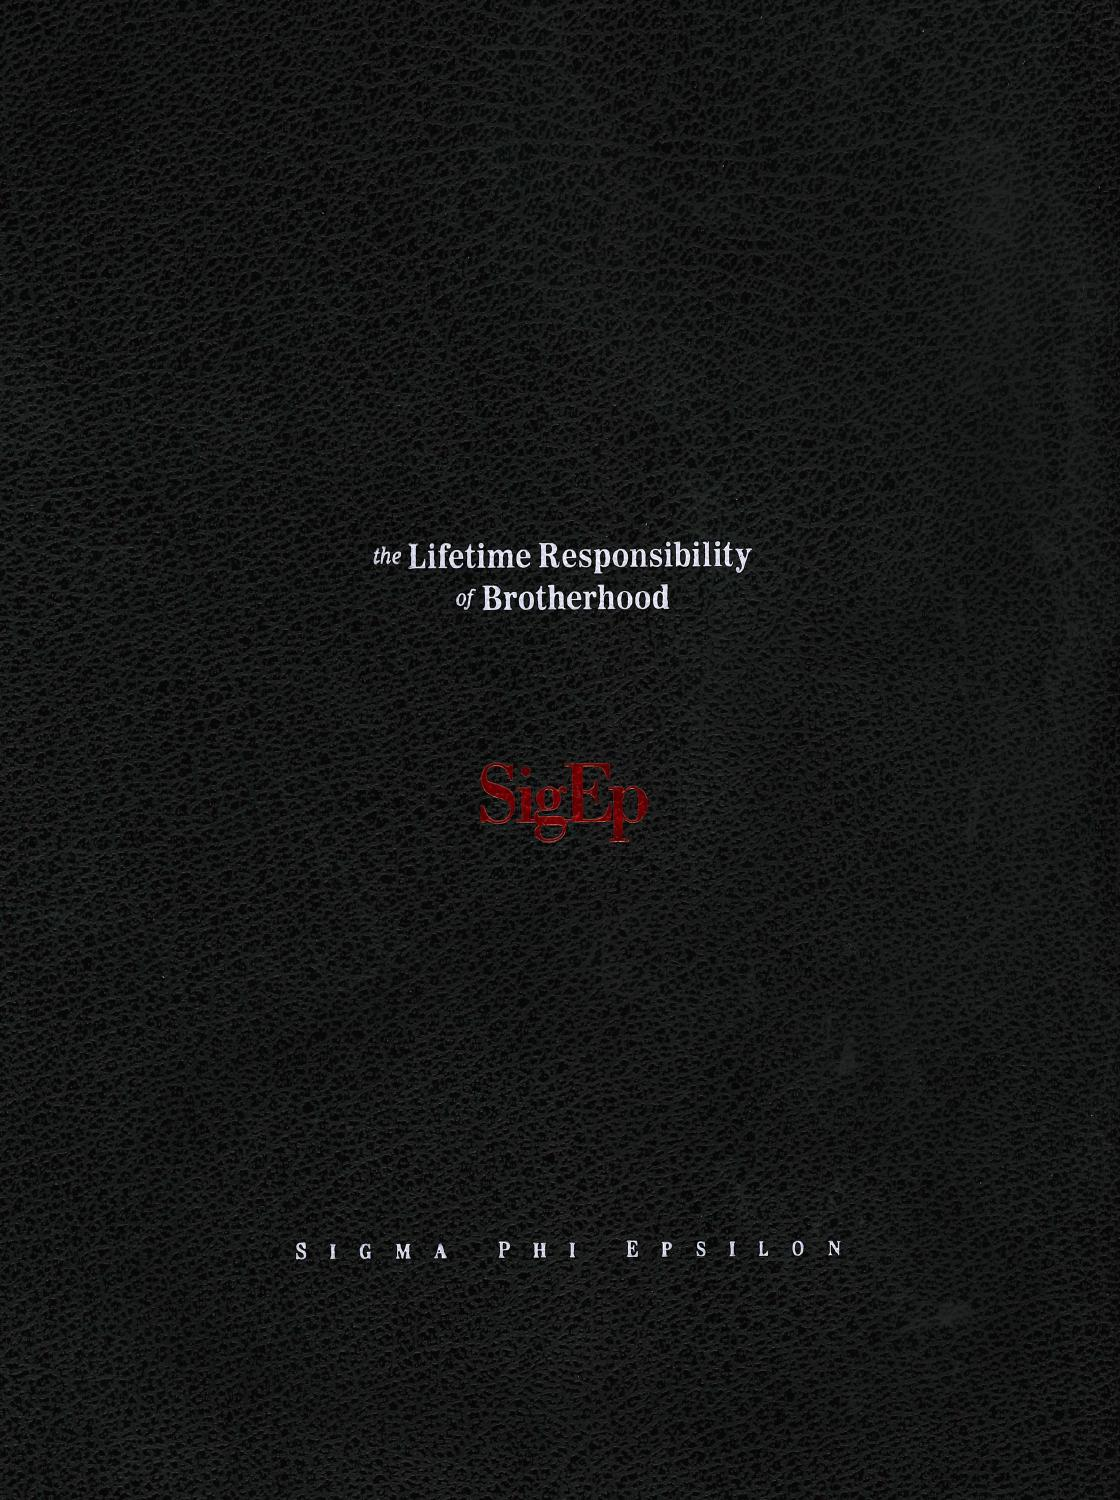 37fb5468b34 The Lifetime Responsibilities of Brotherhood by Sigma Phi Epsilon - issuu